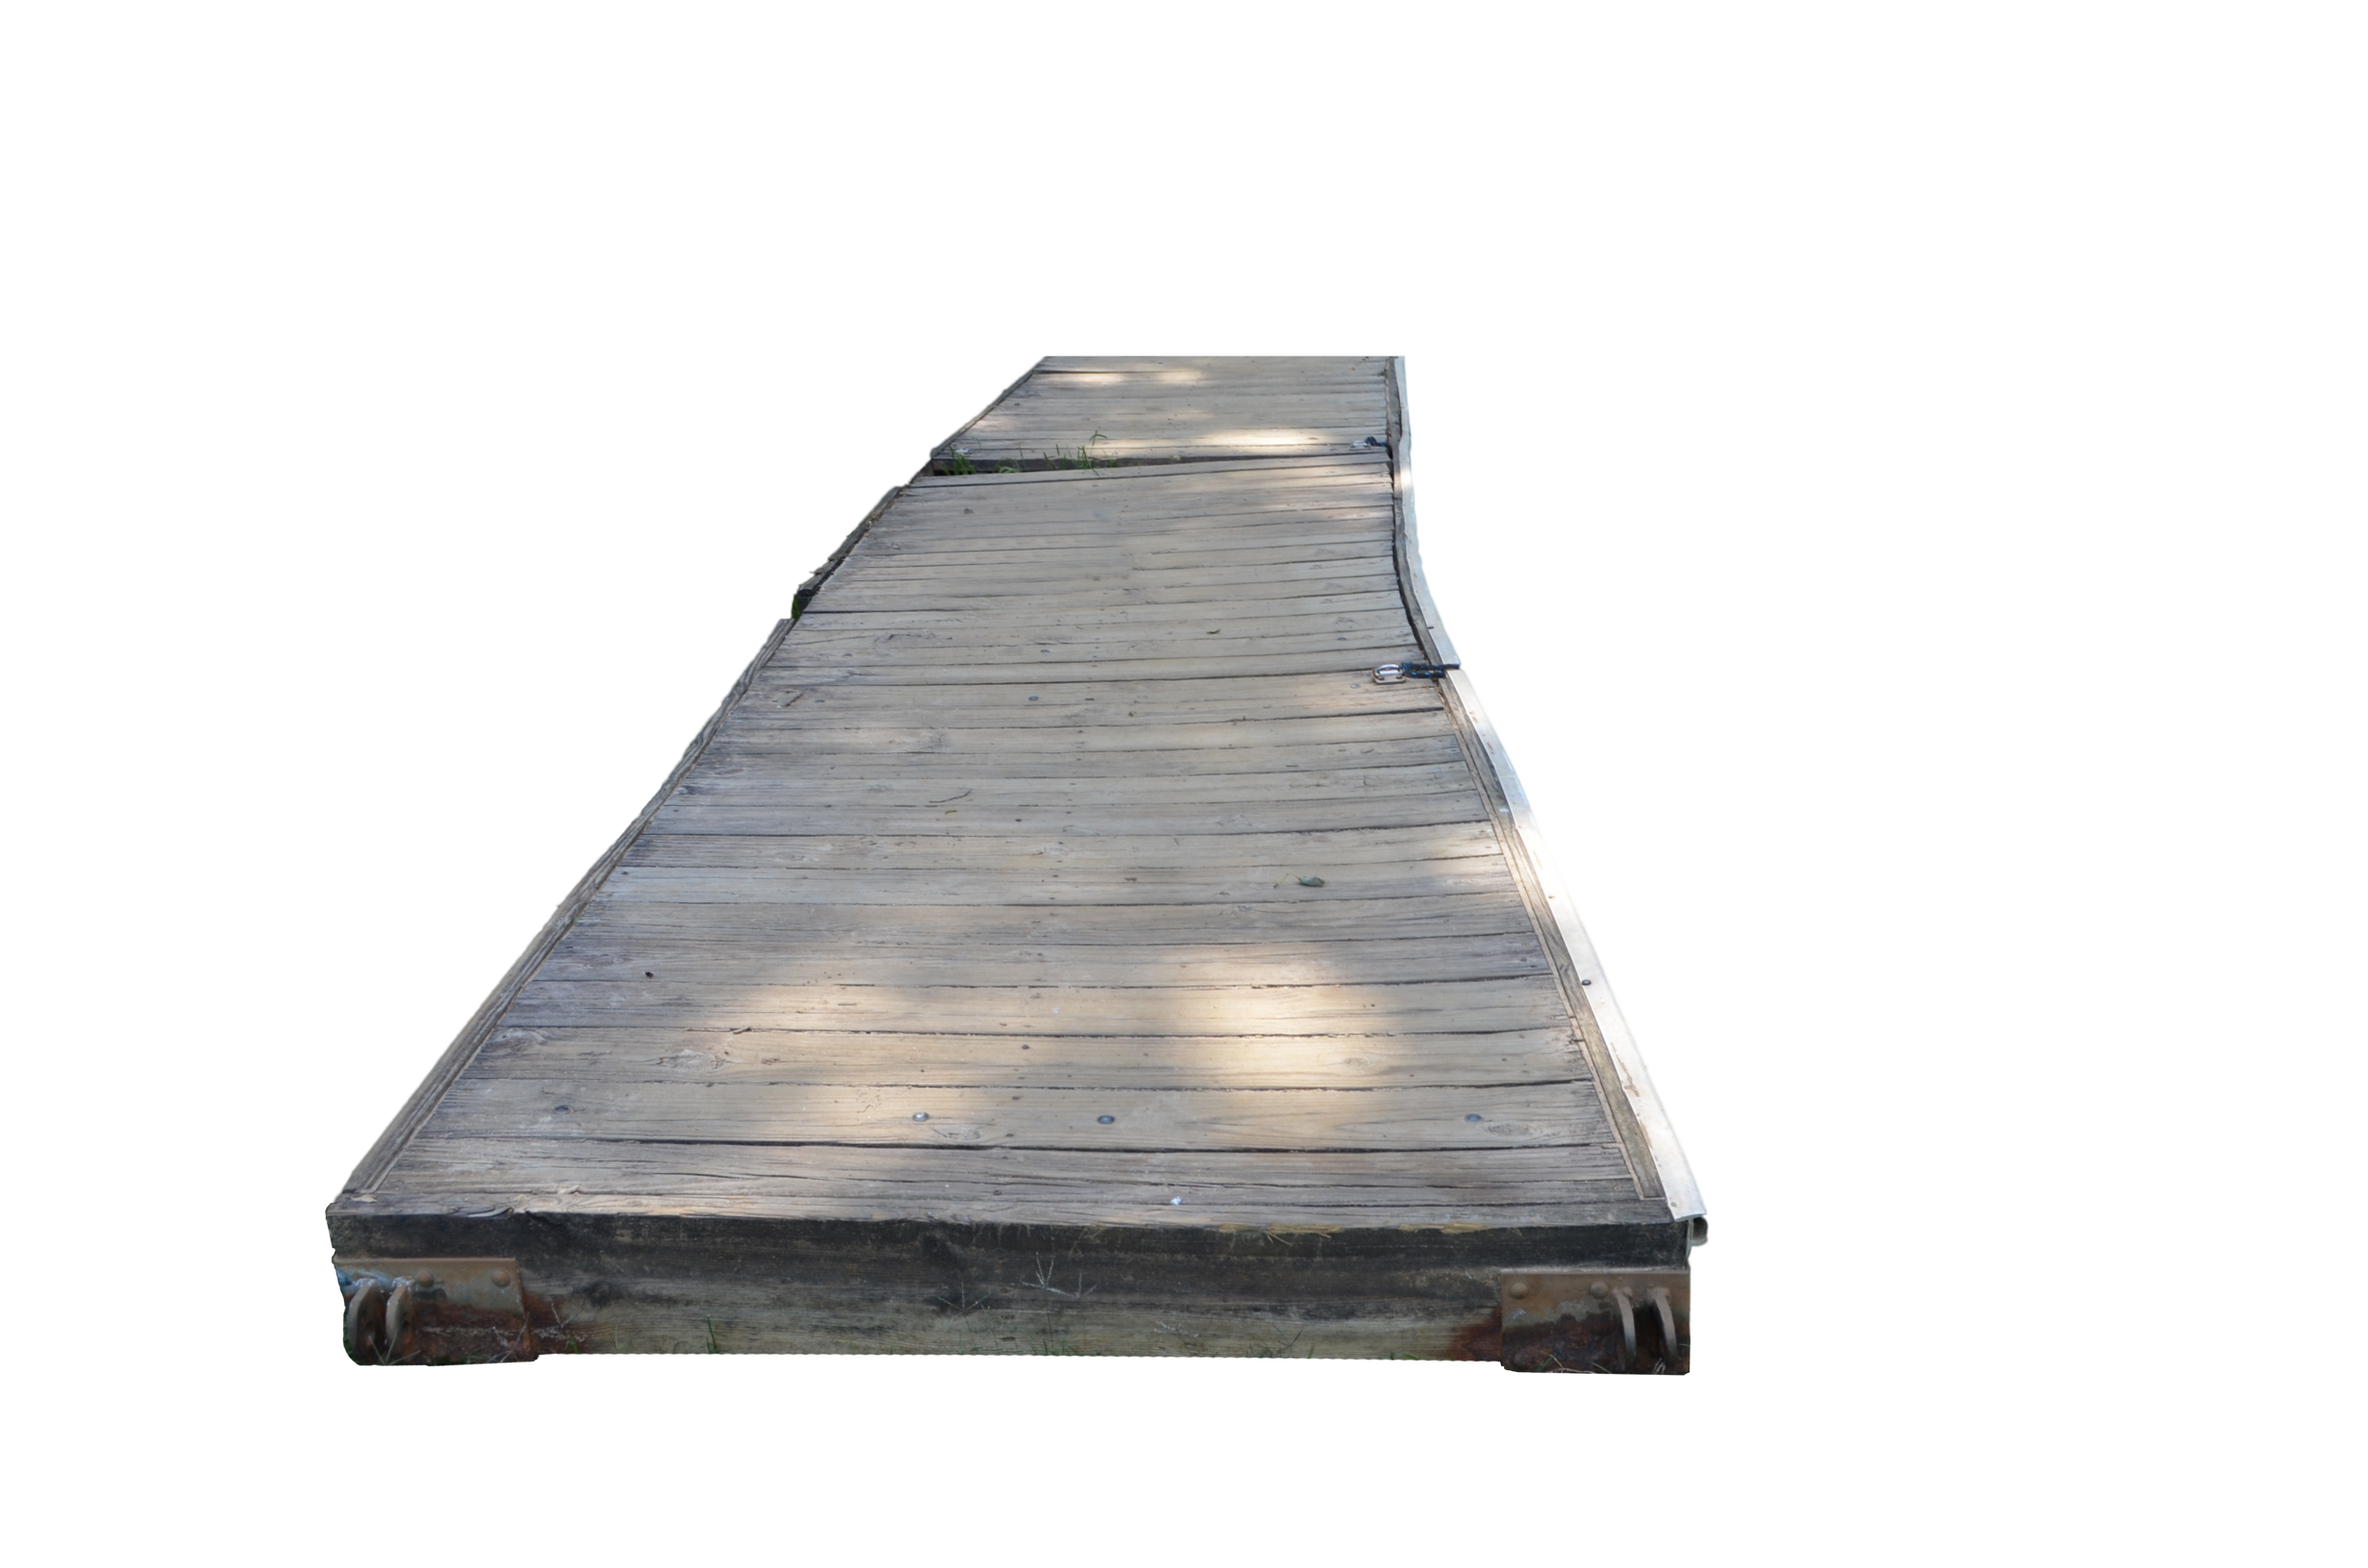 Download Wooden Bridge PNG Image for Free.